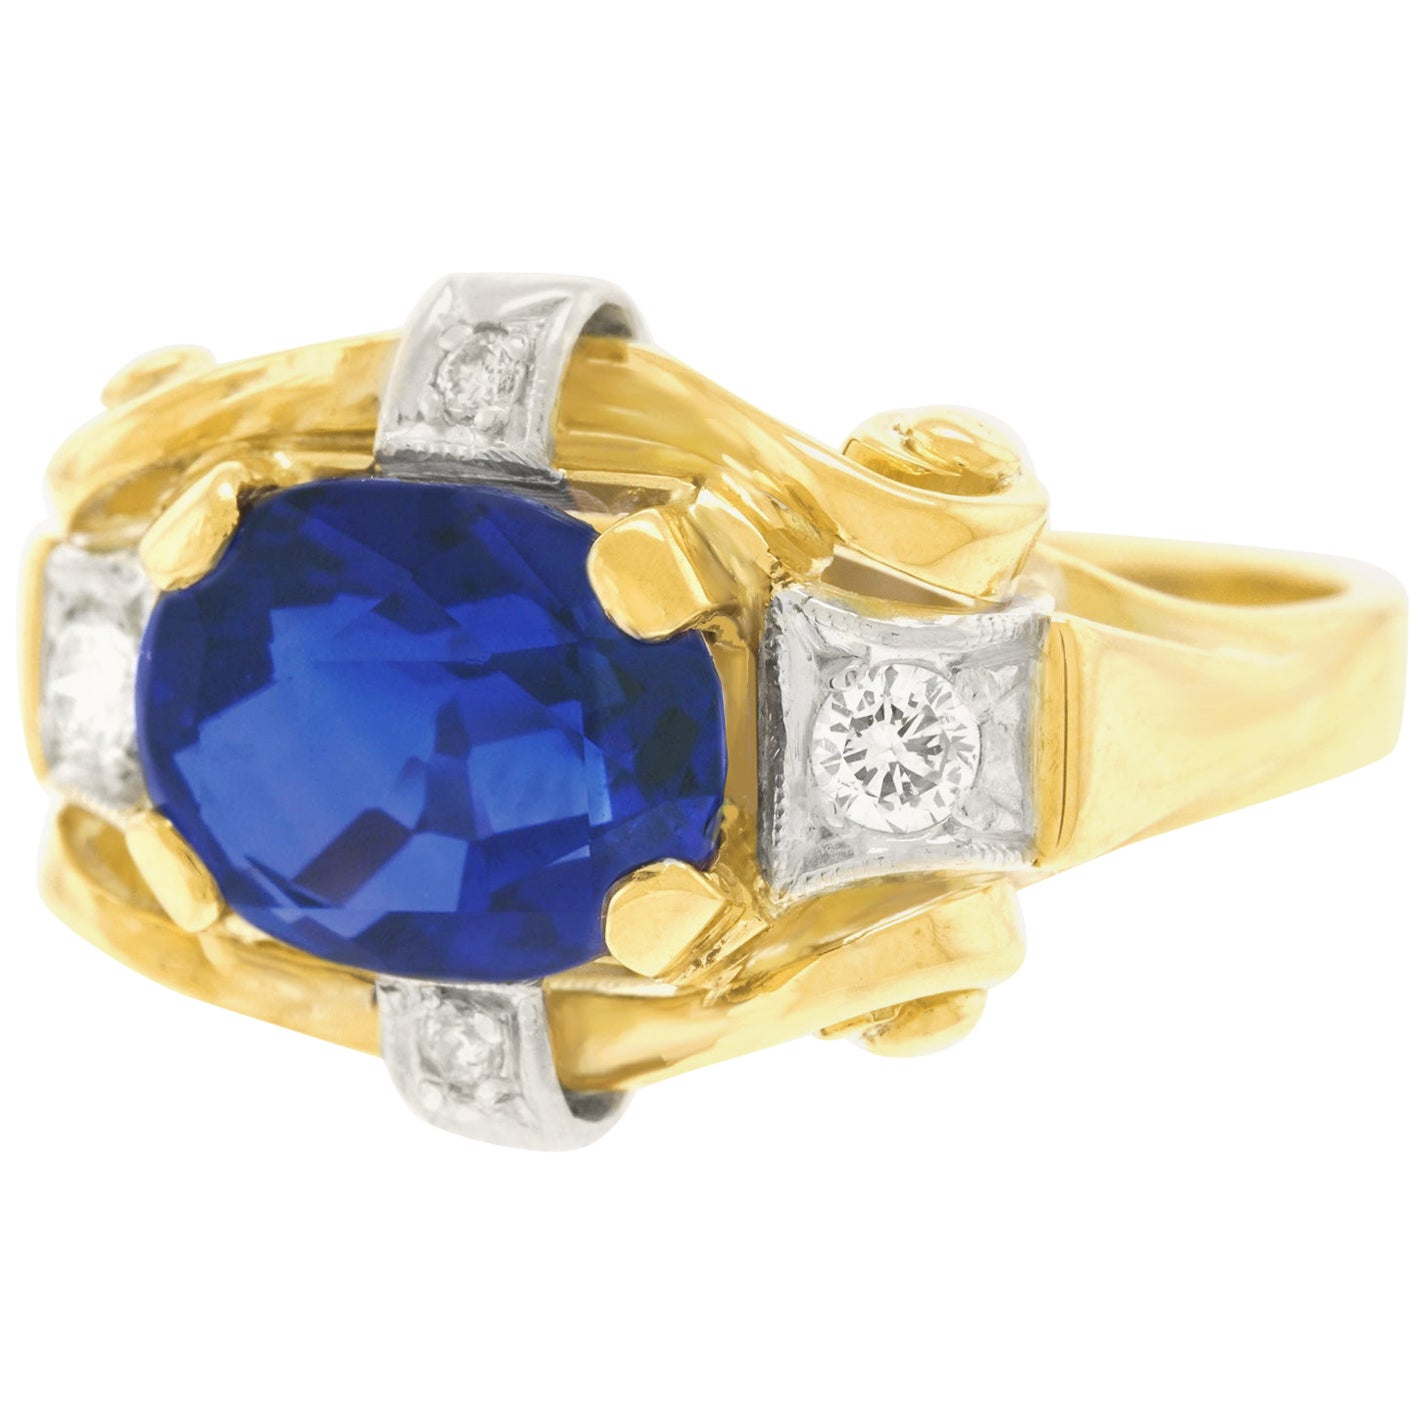 4.01 Carat Sapphire and Diamond Art Deco Ring